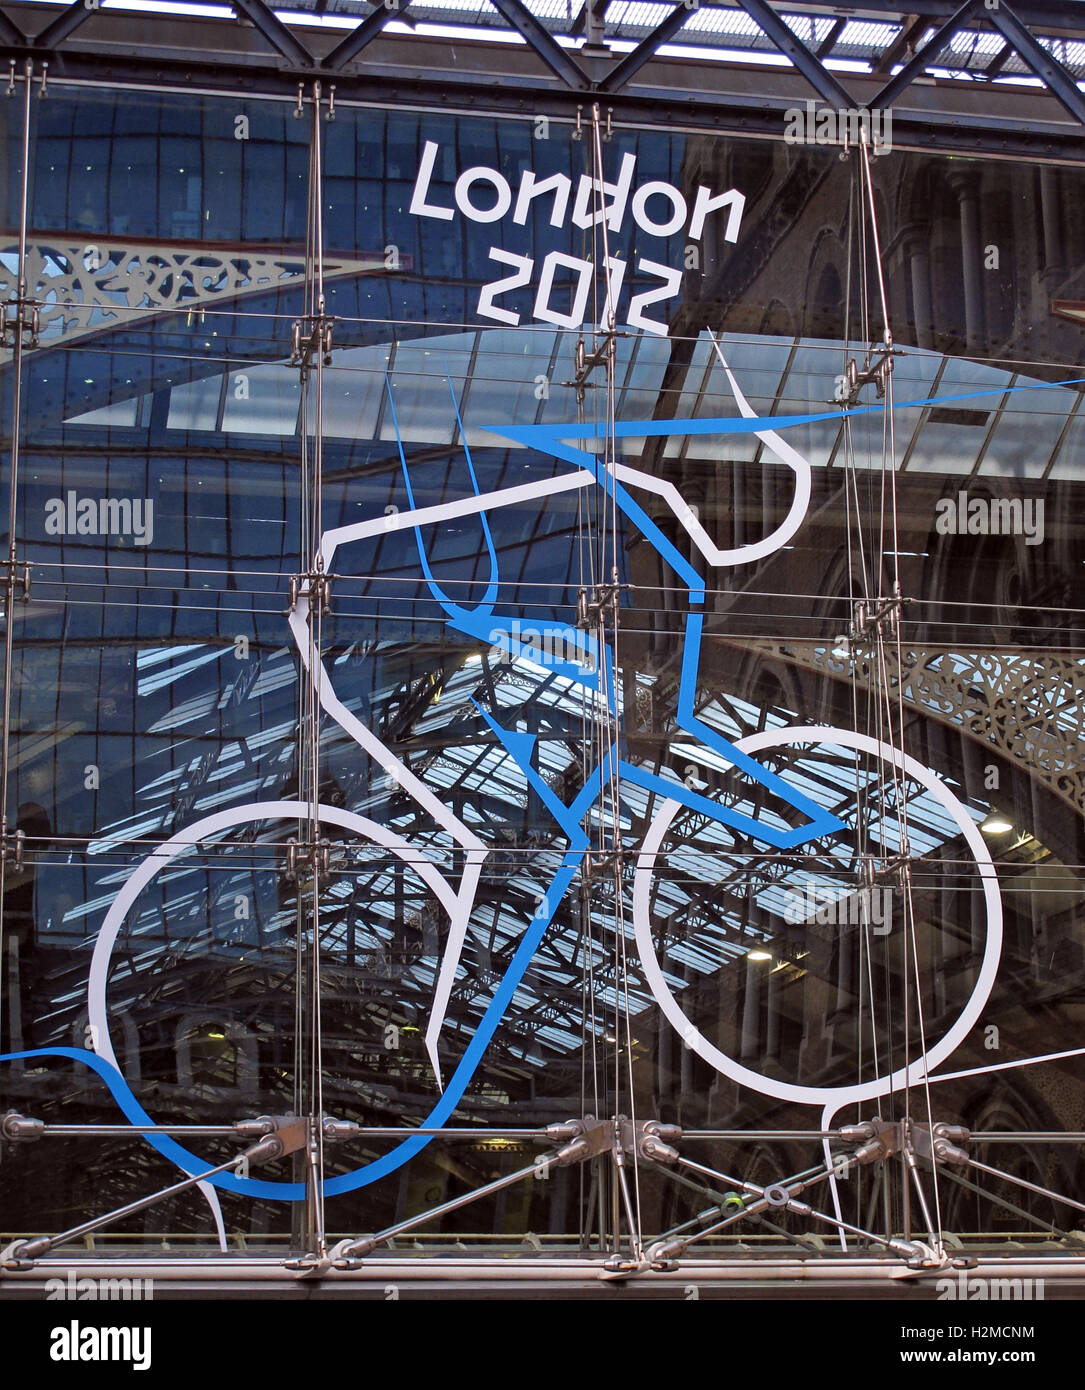 London Olympics Cycling 2012 sculpture at Liverpool St Station - Stock Image